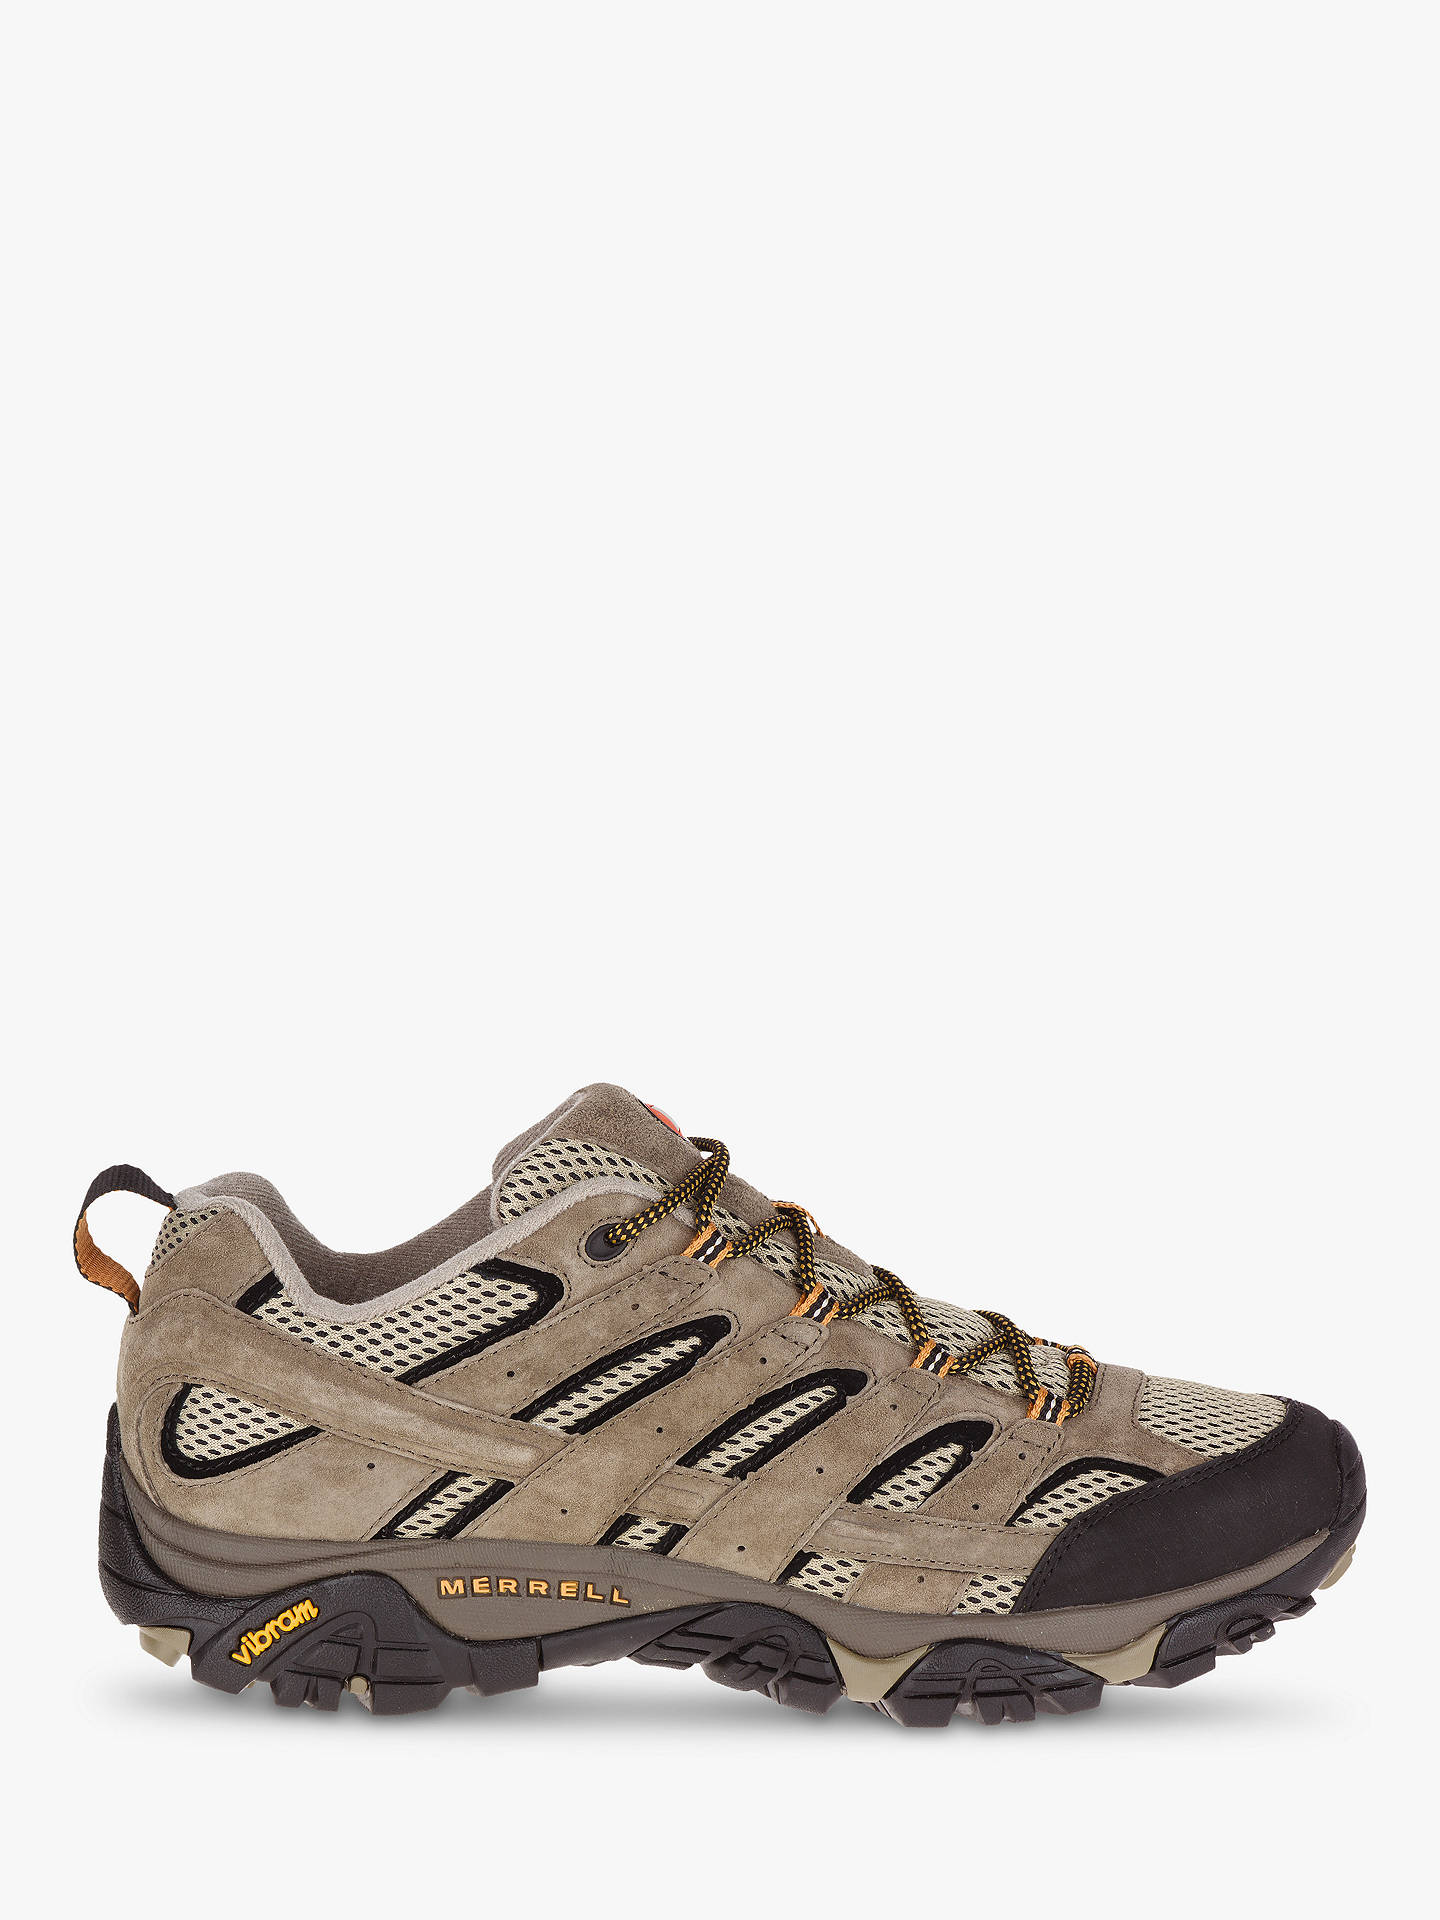 new styles 20734 24c33 Buy Merrell Men s Moab Ventilator 2 Hiking Shoes, Pecan, 7 Online at  johnlewis.